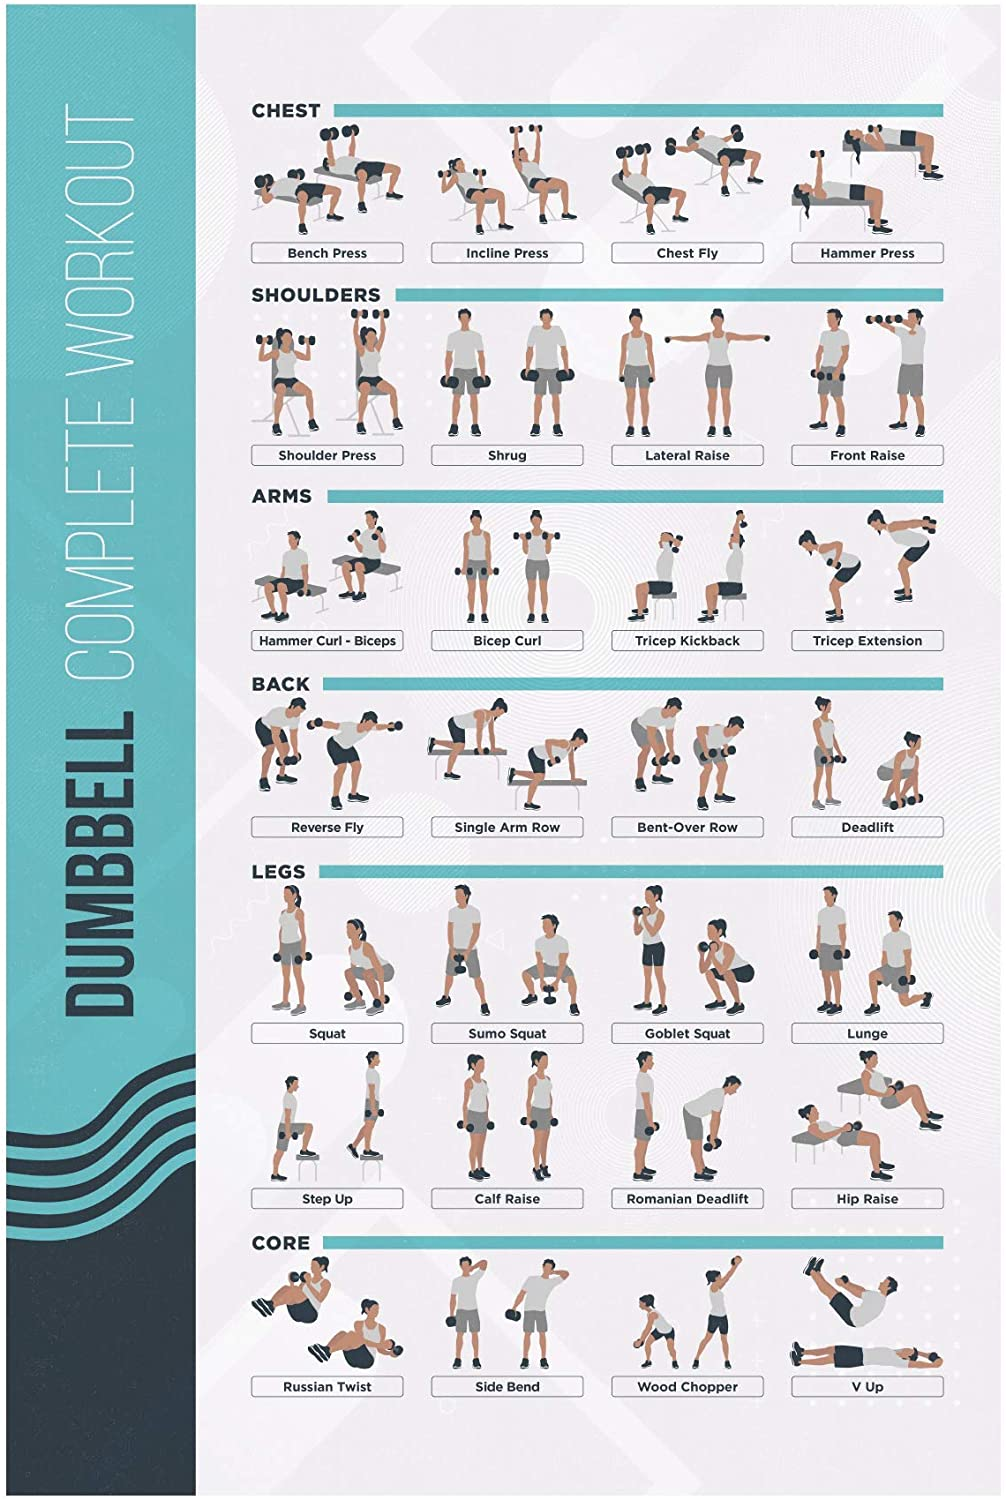 FitMate Dumbbell Workout Exercise Poster - Workout Routine with Free Weights, Home Gym Decor, Room Guide